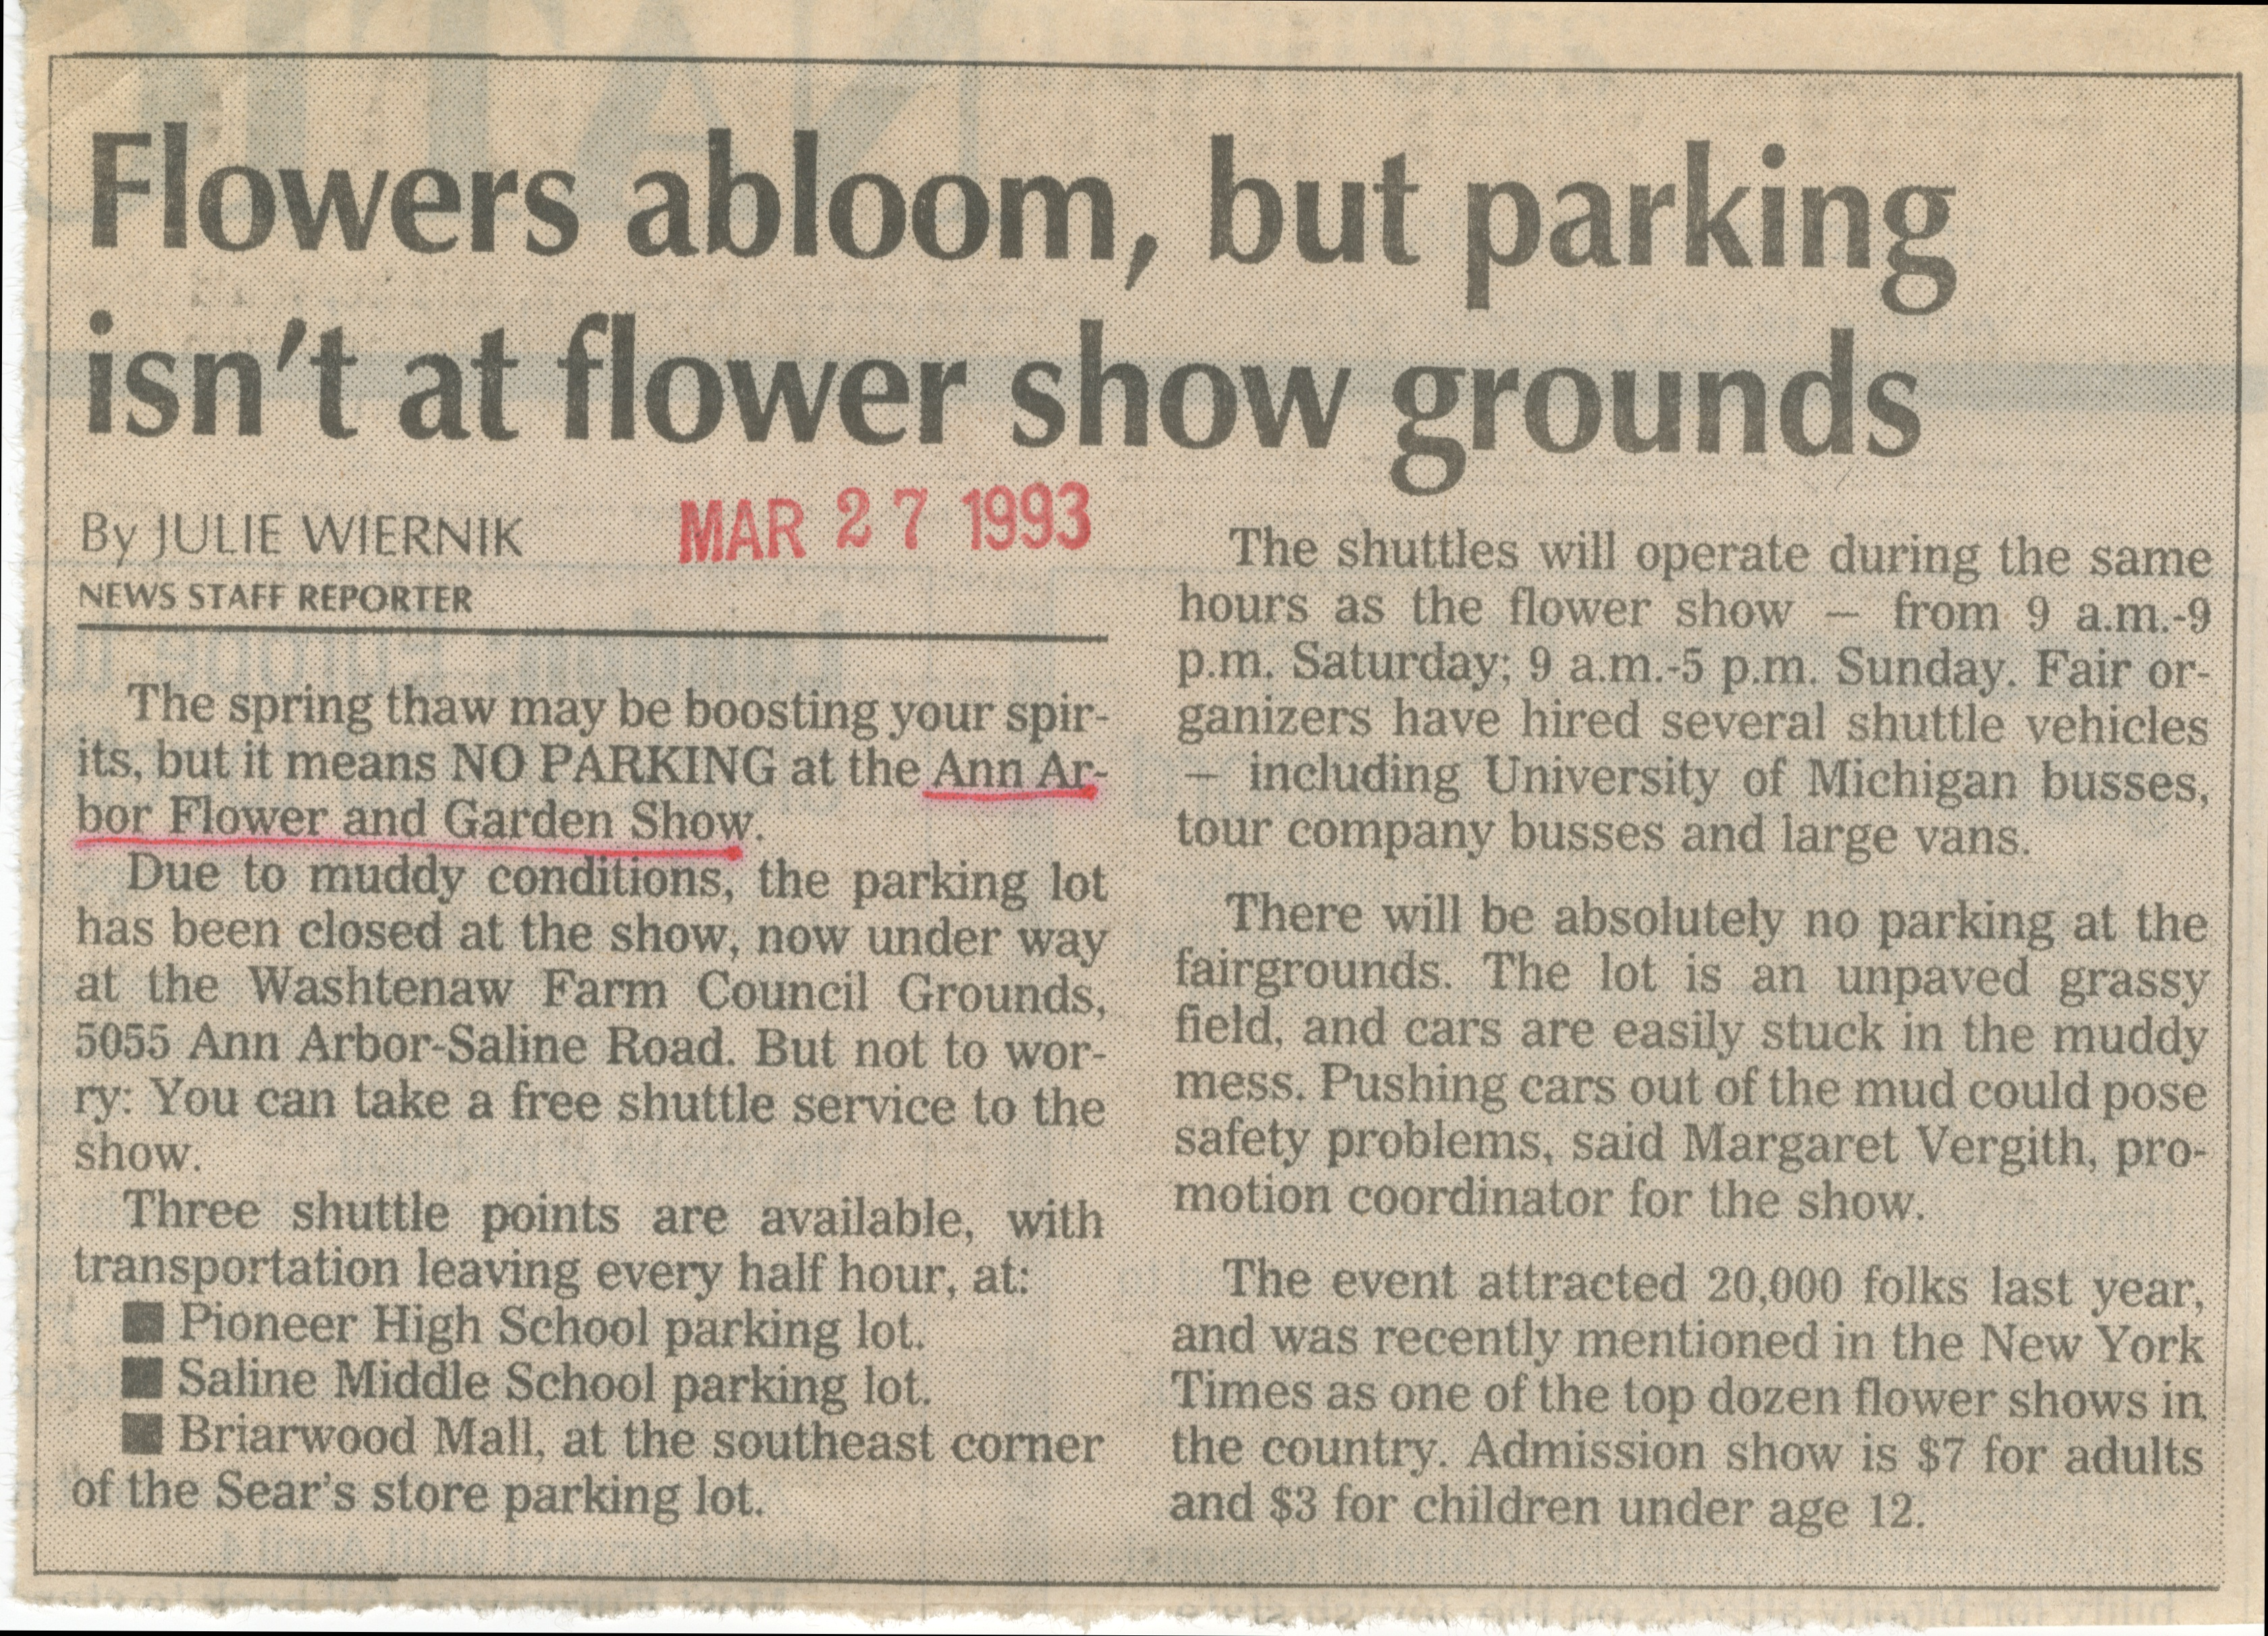 Flowers Abloom, But Parking Isn't at Flower Show Grounds image